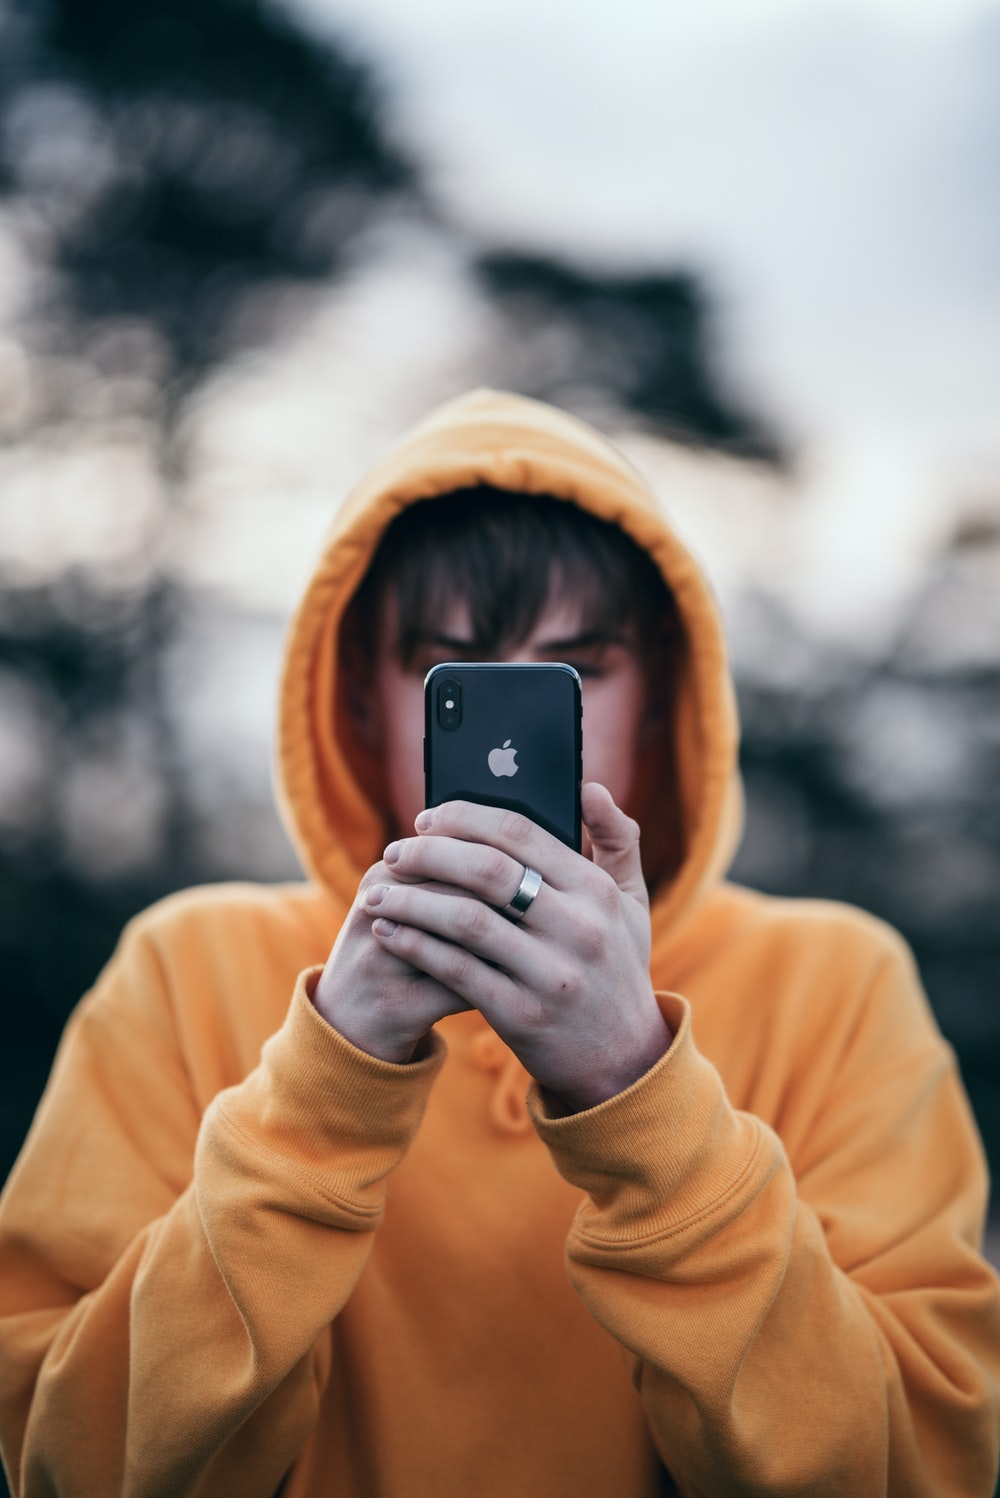 Man Holding Iphone X Photo Free Clothing Image On Unsplash